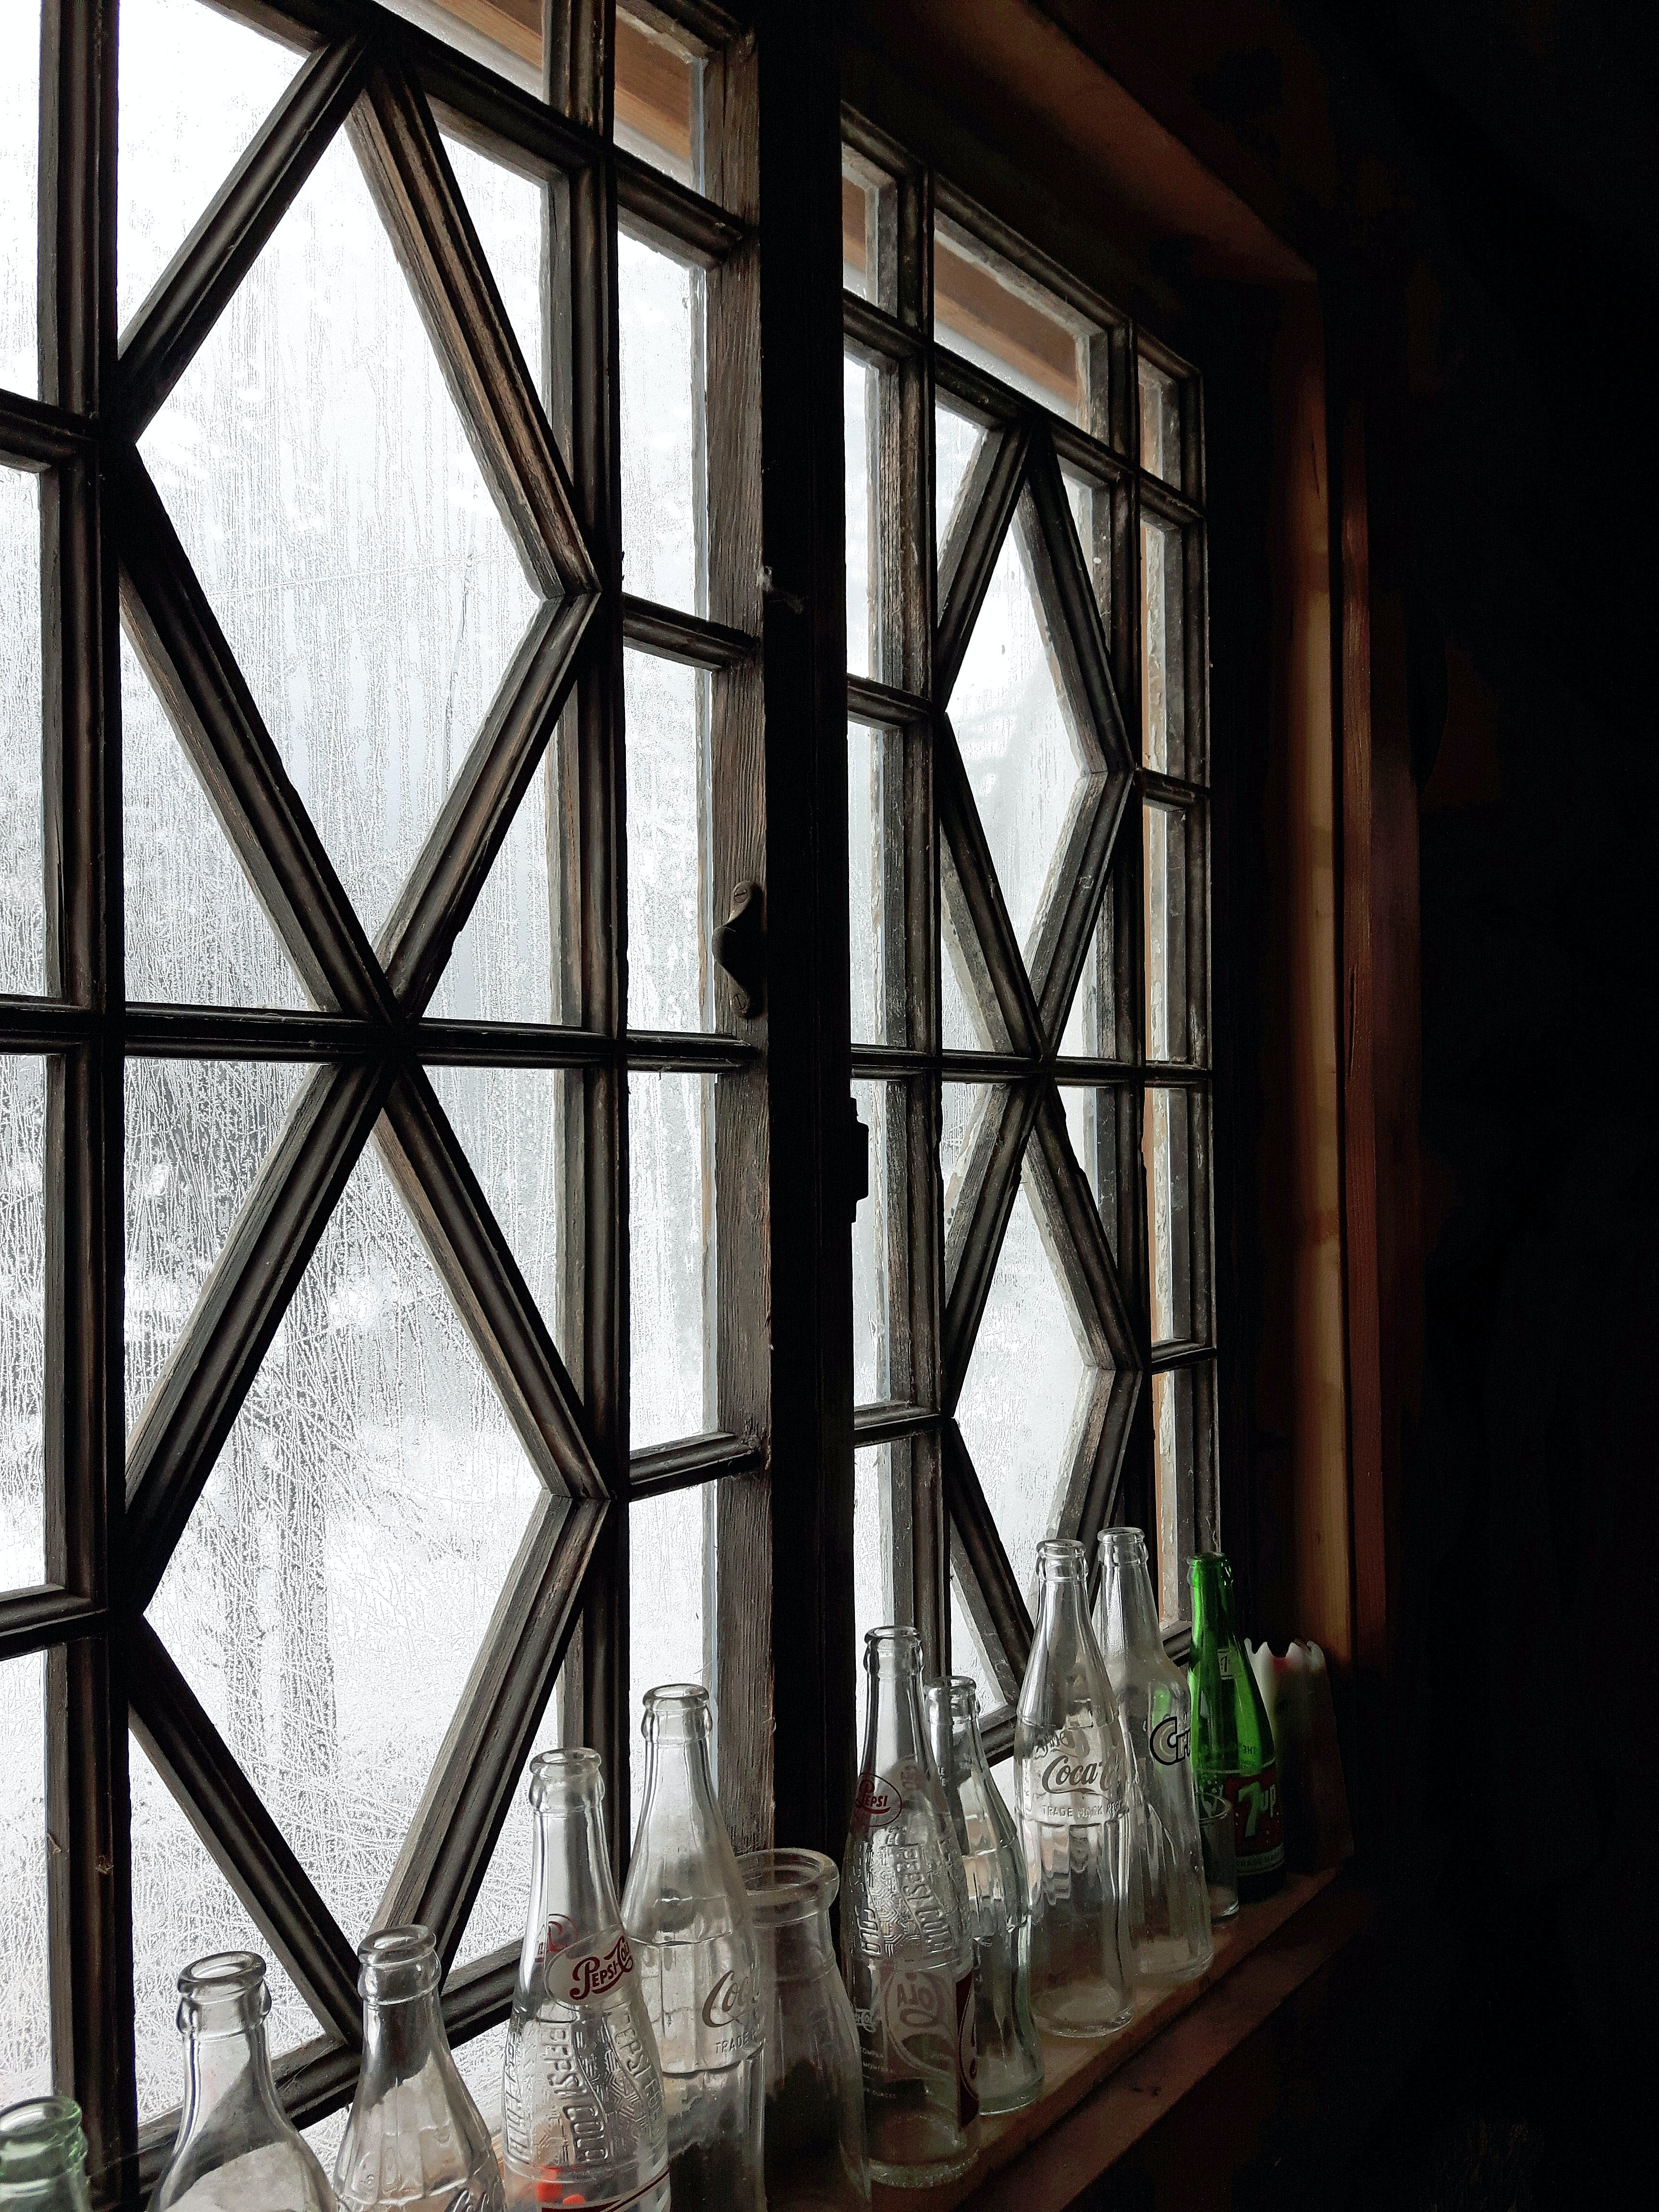 Free stock photo of frost, Frosted Window, glass window, window pane